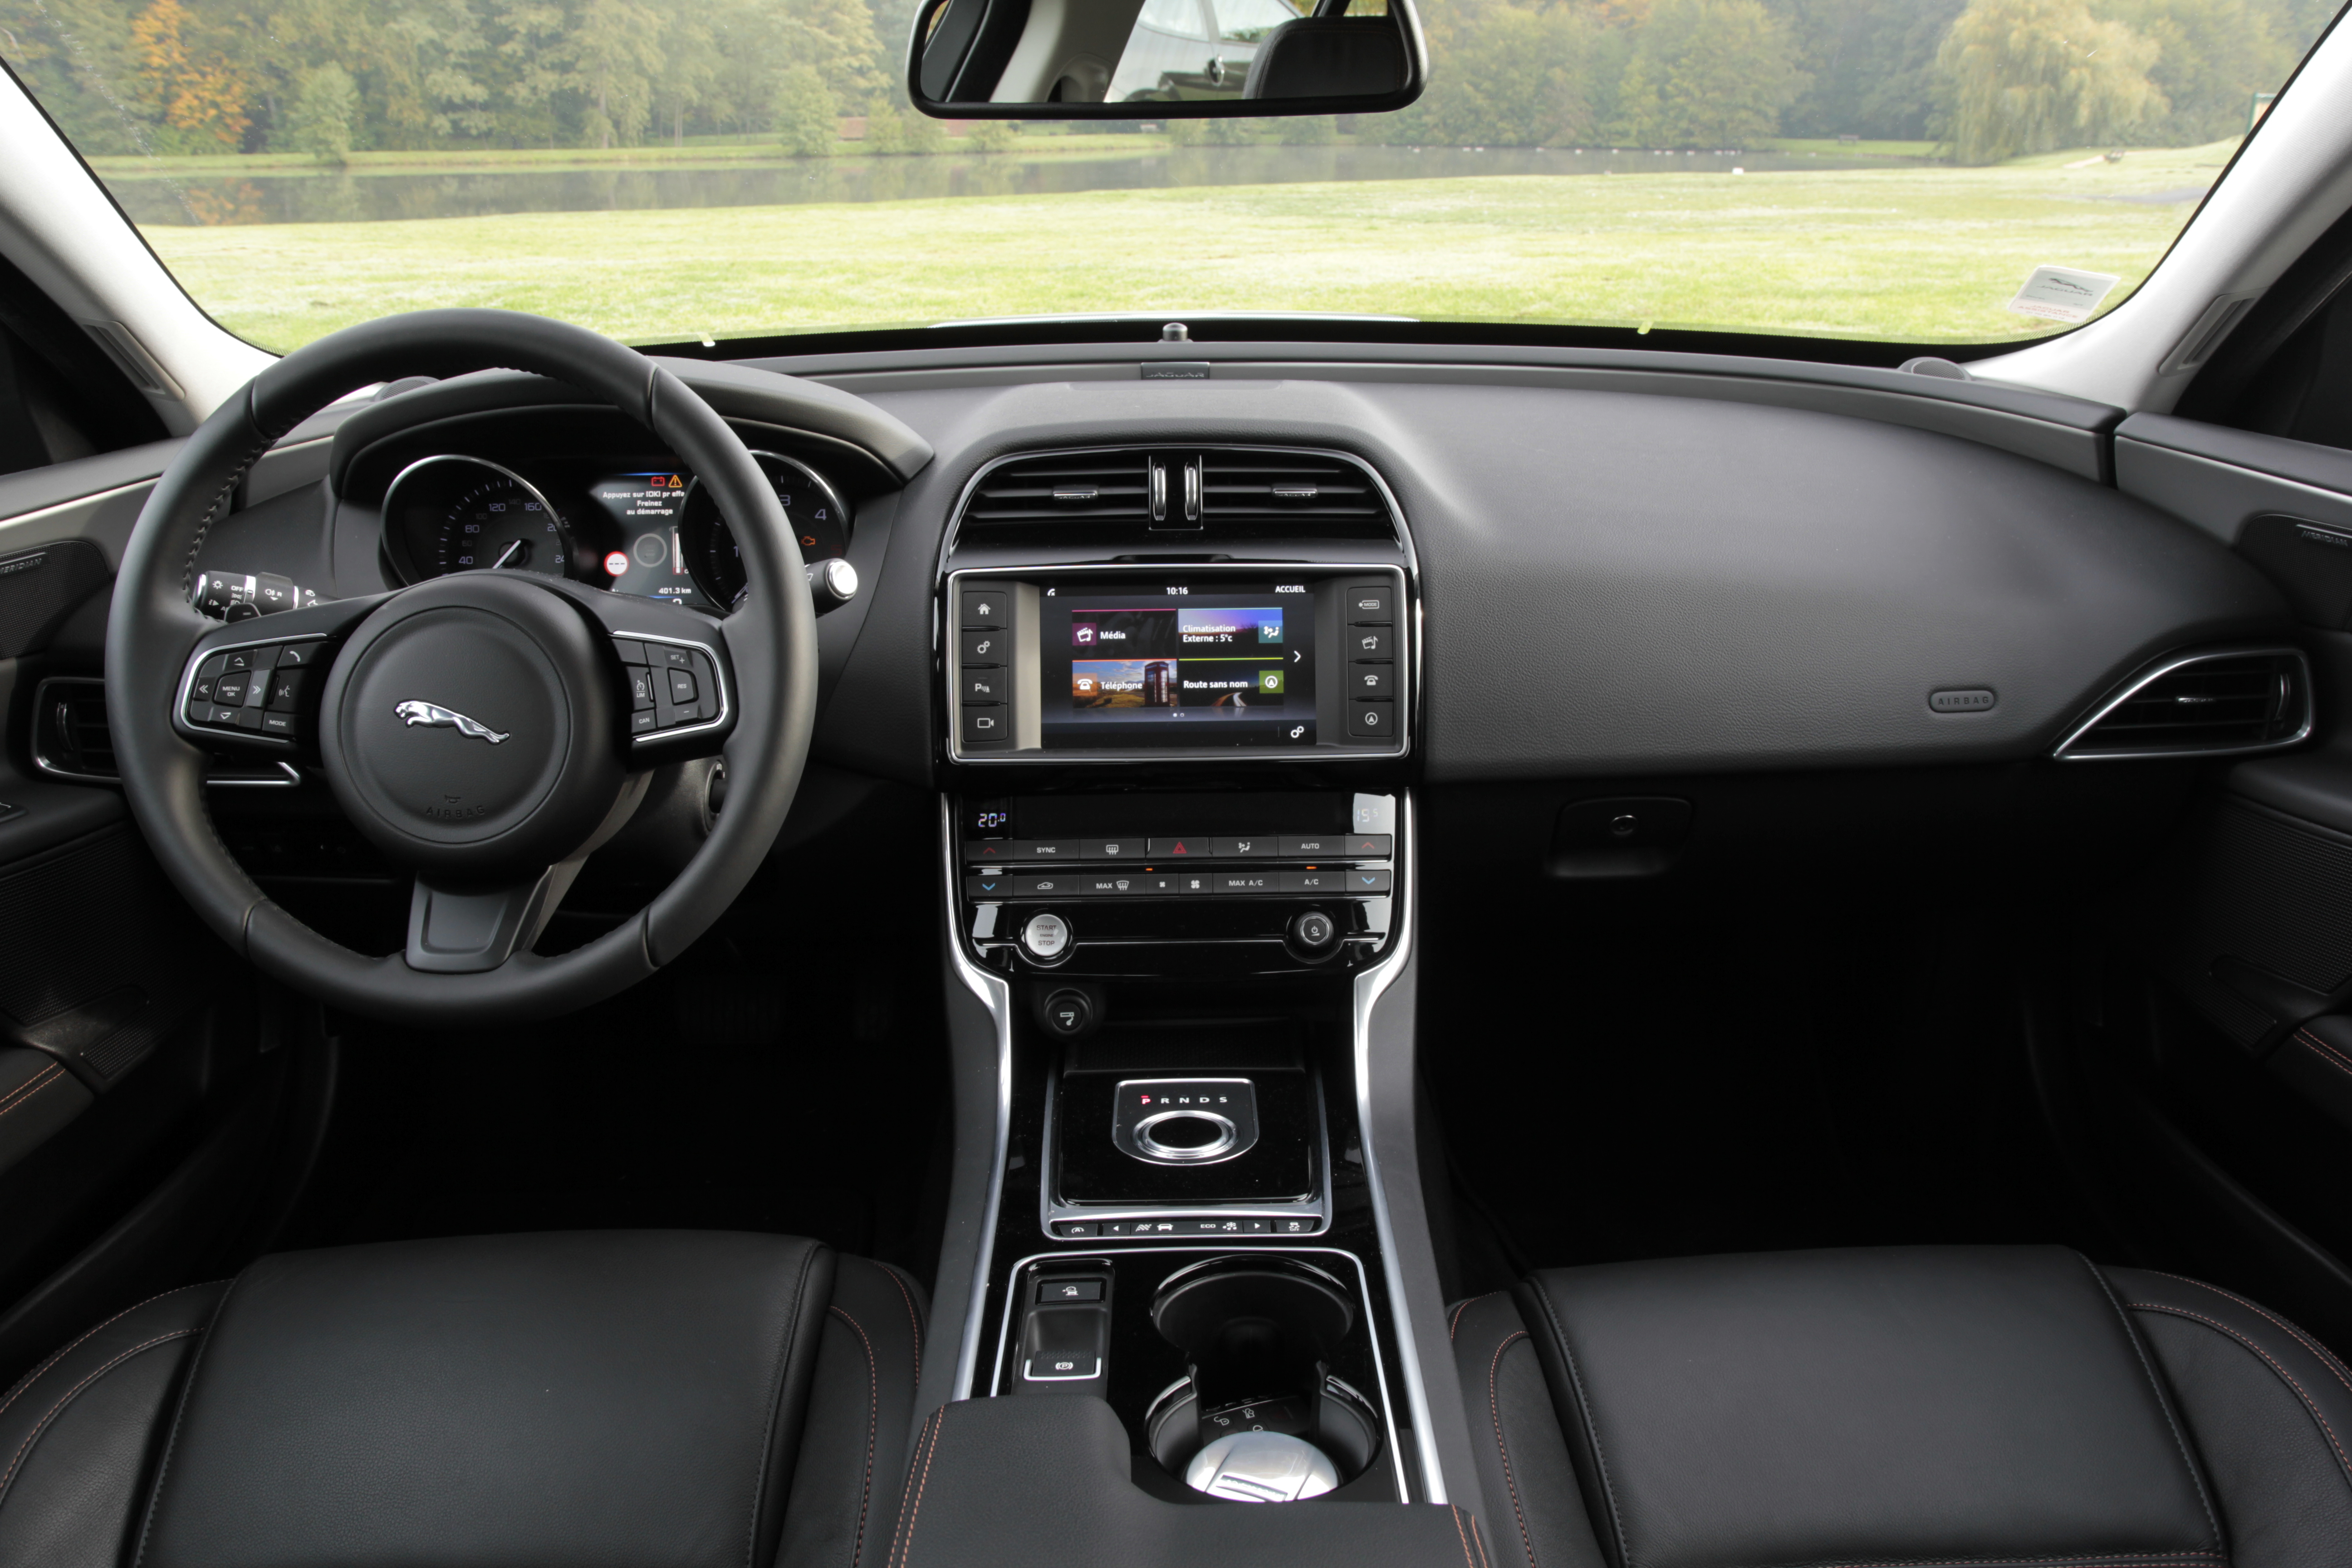 Comparatif vid o jaguar xe vs mercedes classe c for Interieur jaguar